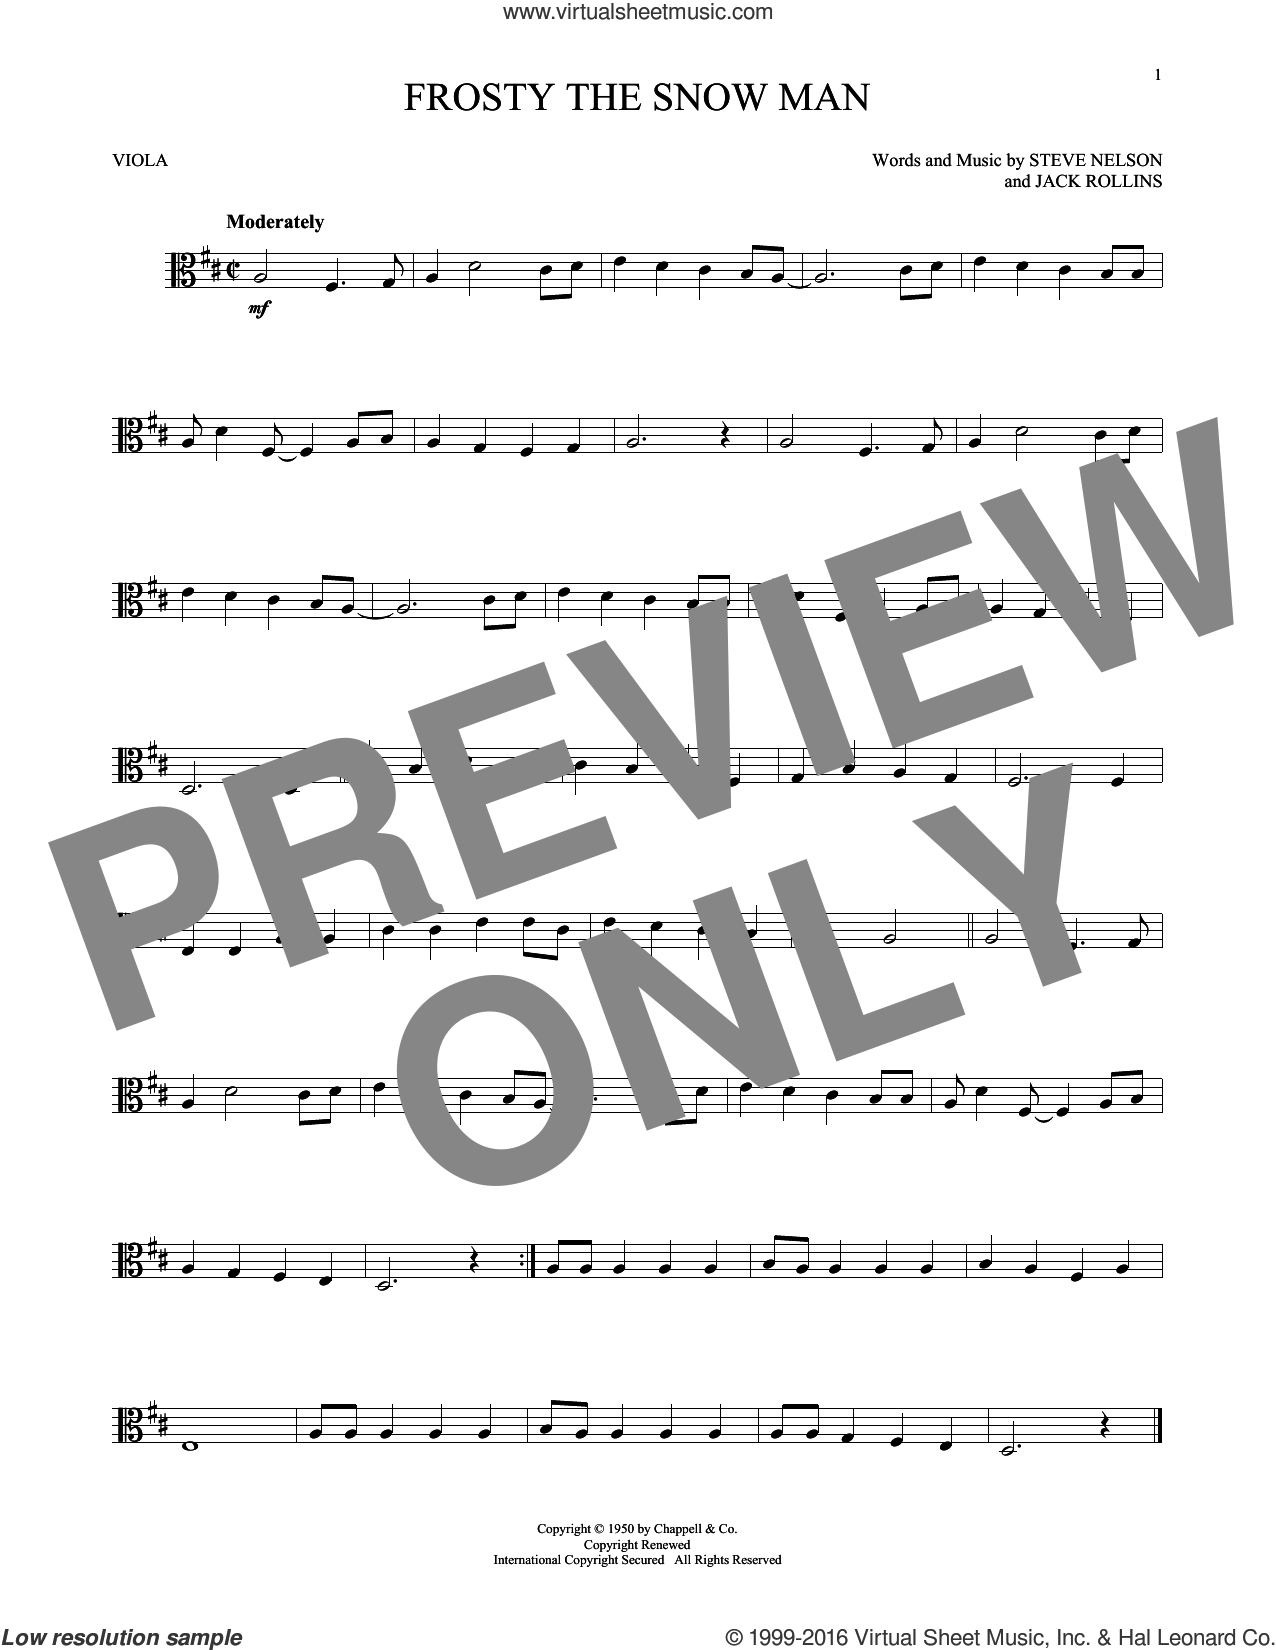 Frosty The Snow Man sheet music for viola solo by Steve Nelson and Jack Rollins, intermediate. Score Image Preview.